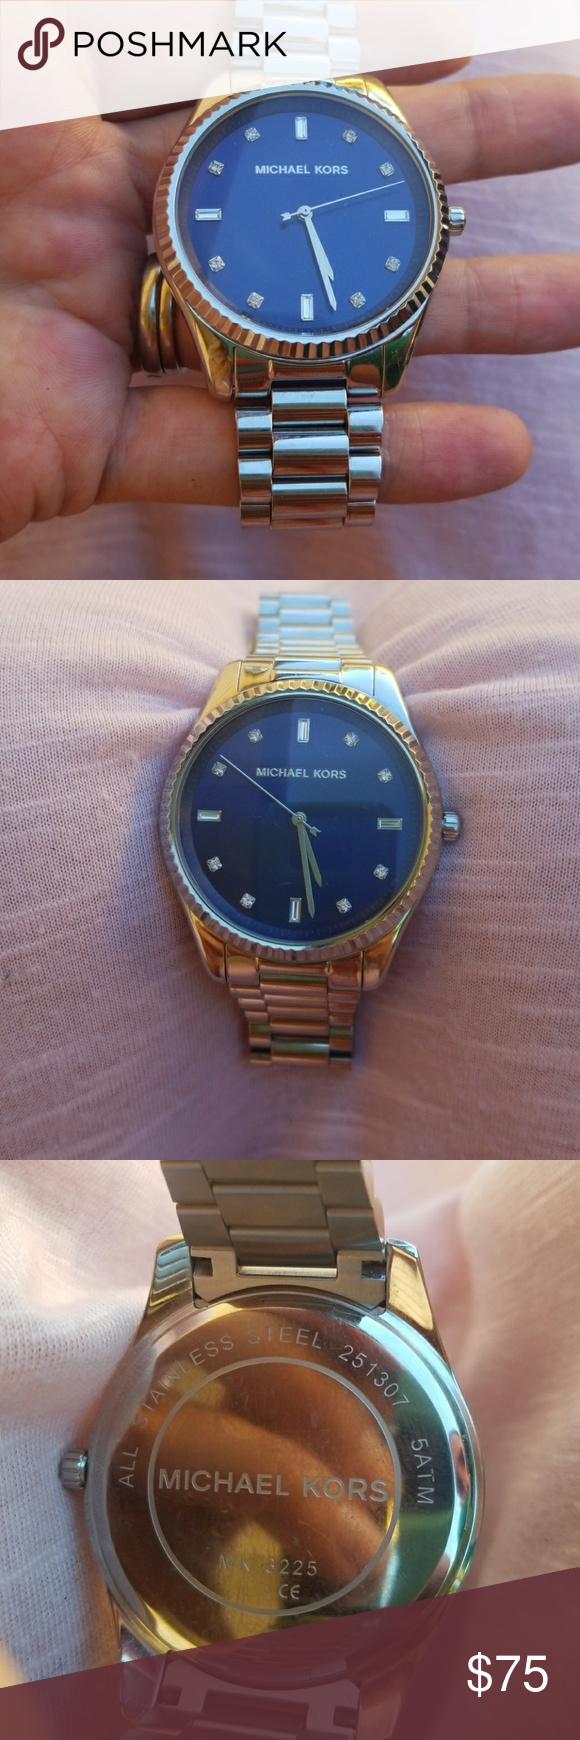 864b5c679e57 Michael Kors Blake MK3225 Blue Dress Watch Stainless Steel - Worn maybe  twice. Slight mark on watch face and back. Michael Kors Accessories Watches